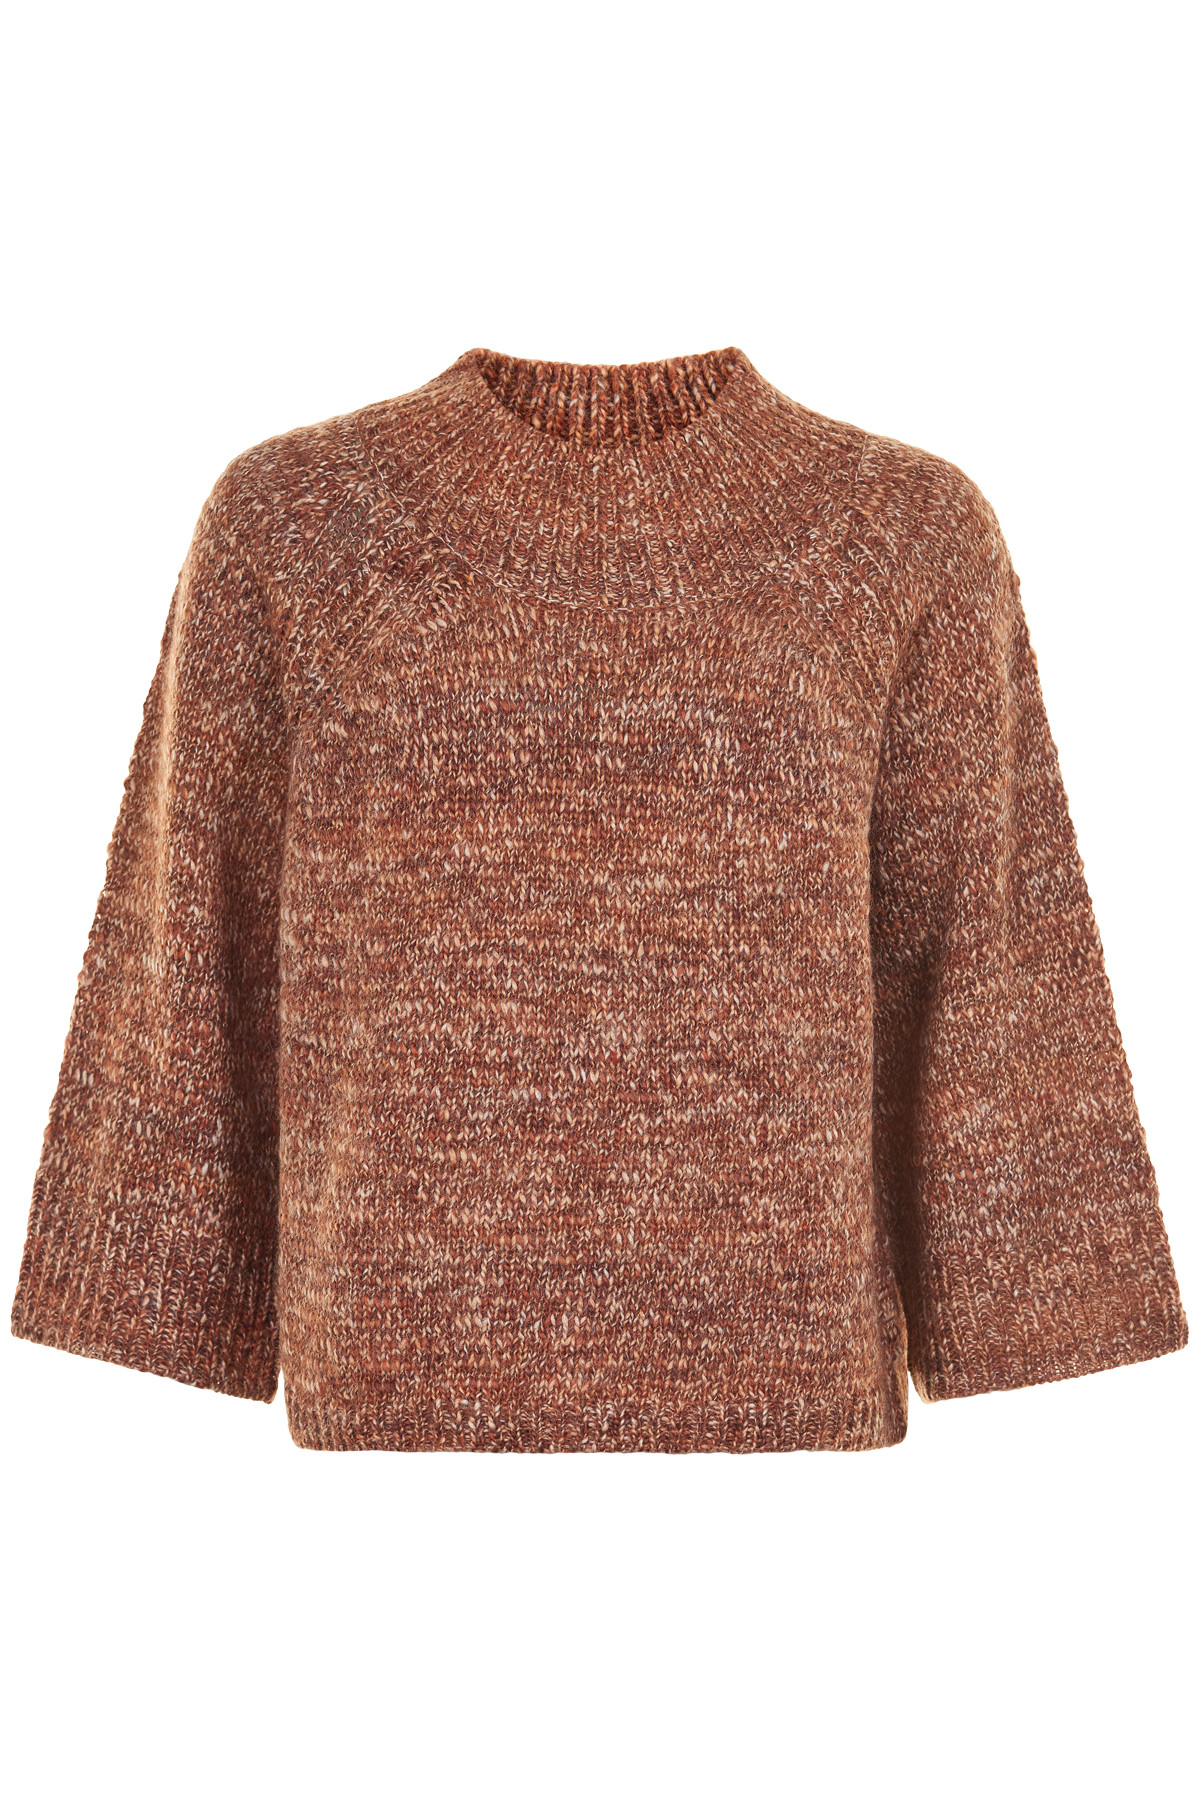 Image of   AND LESS ALHASTI PULLOVER 5519201 (Rawhide, XS)